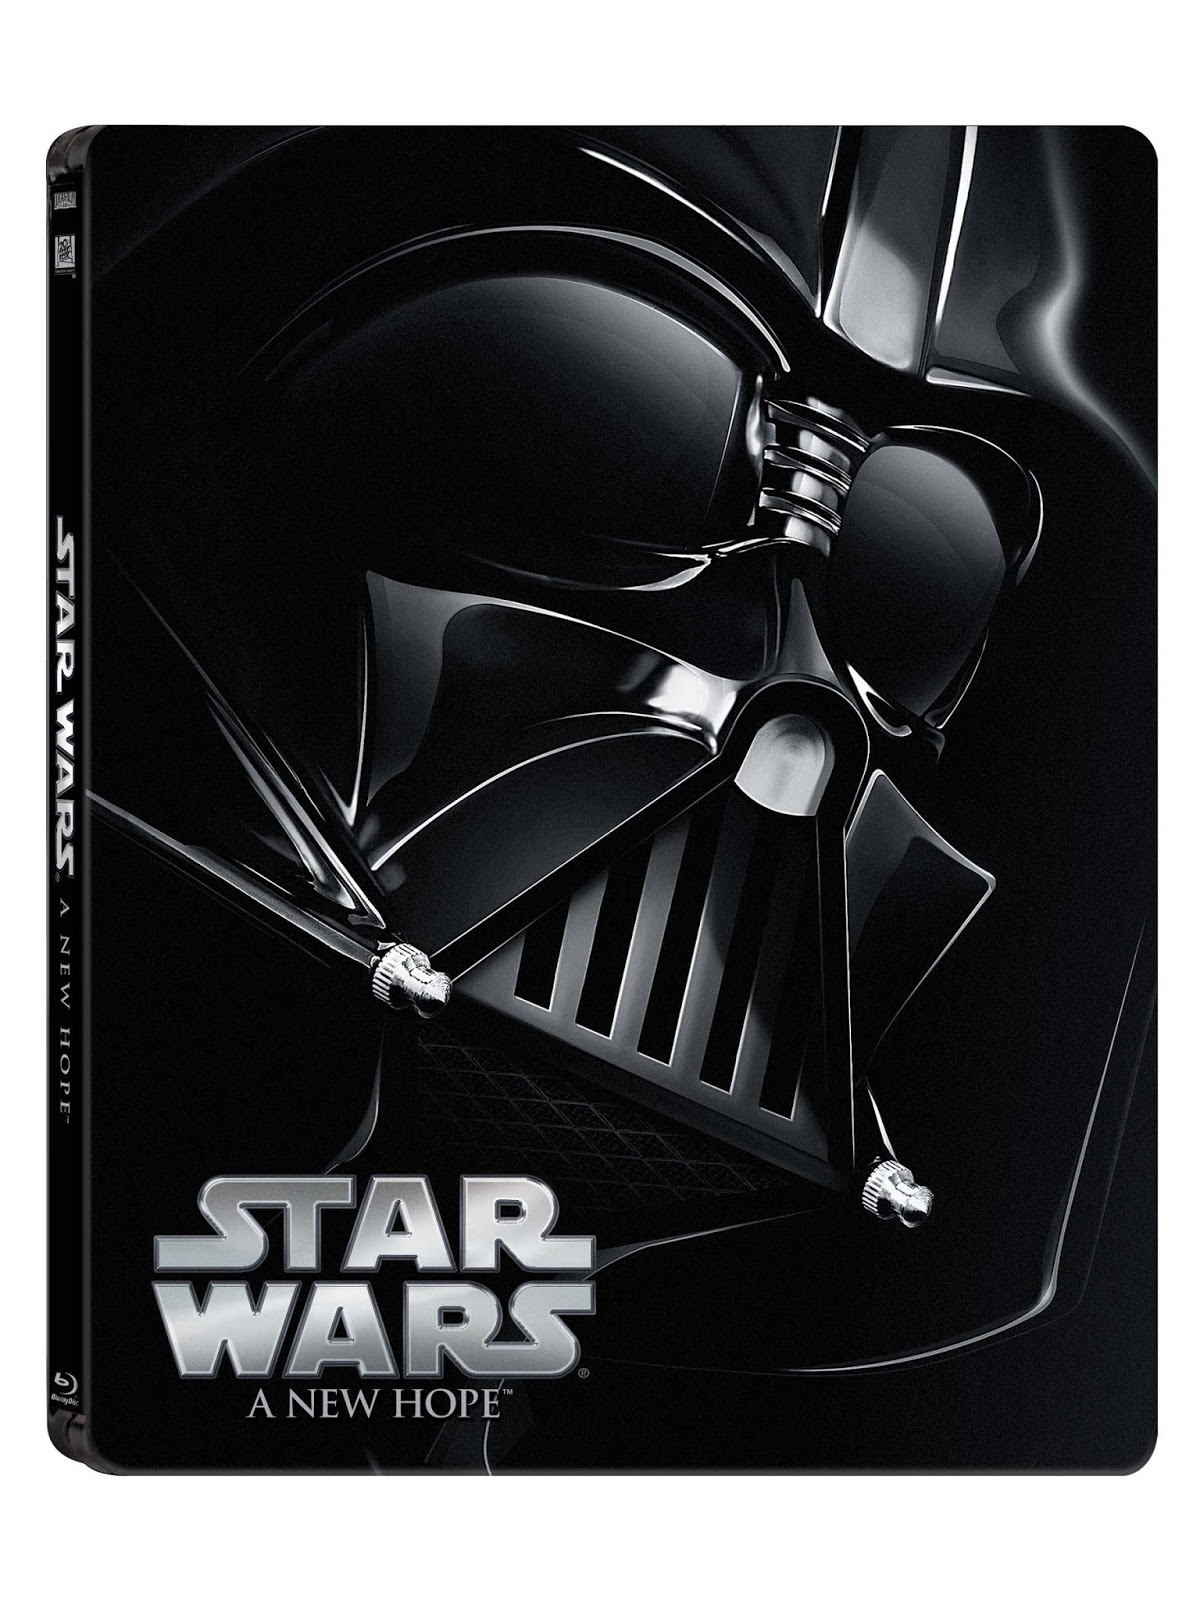 Star Wars Episode Iv A New Hope Limited Edition Steelbook Blu Ray Review